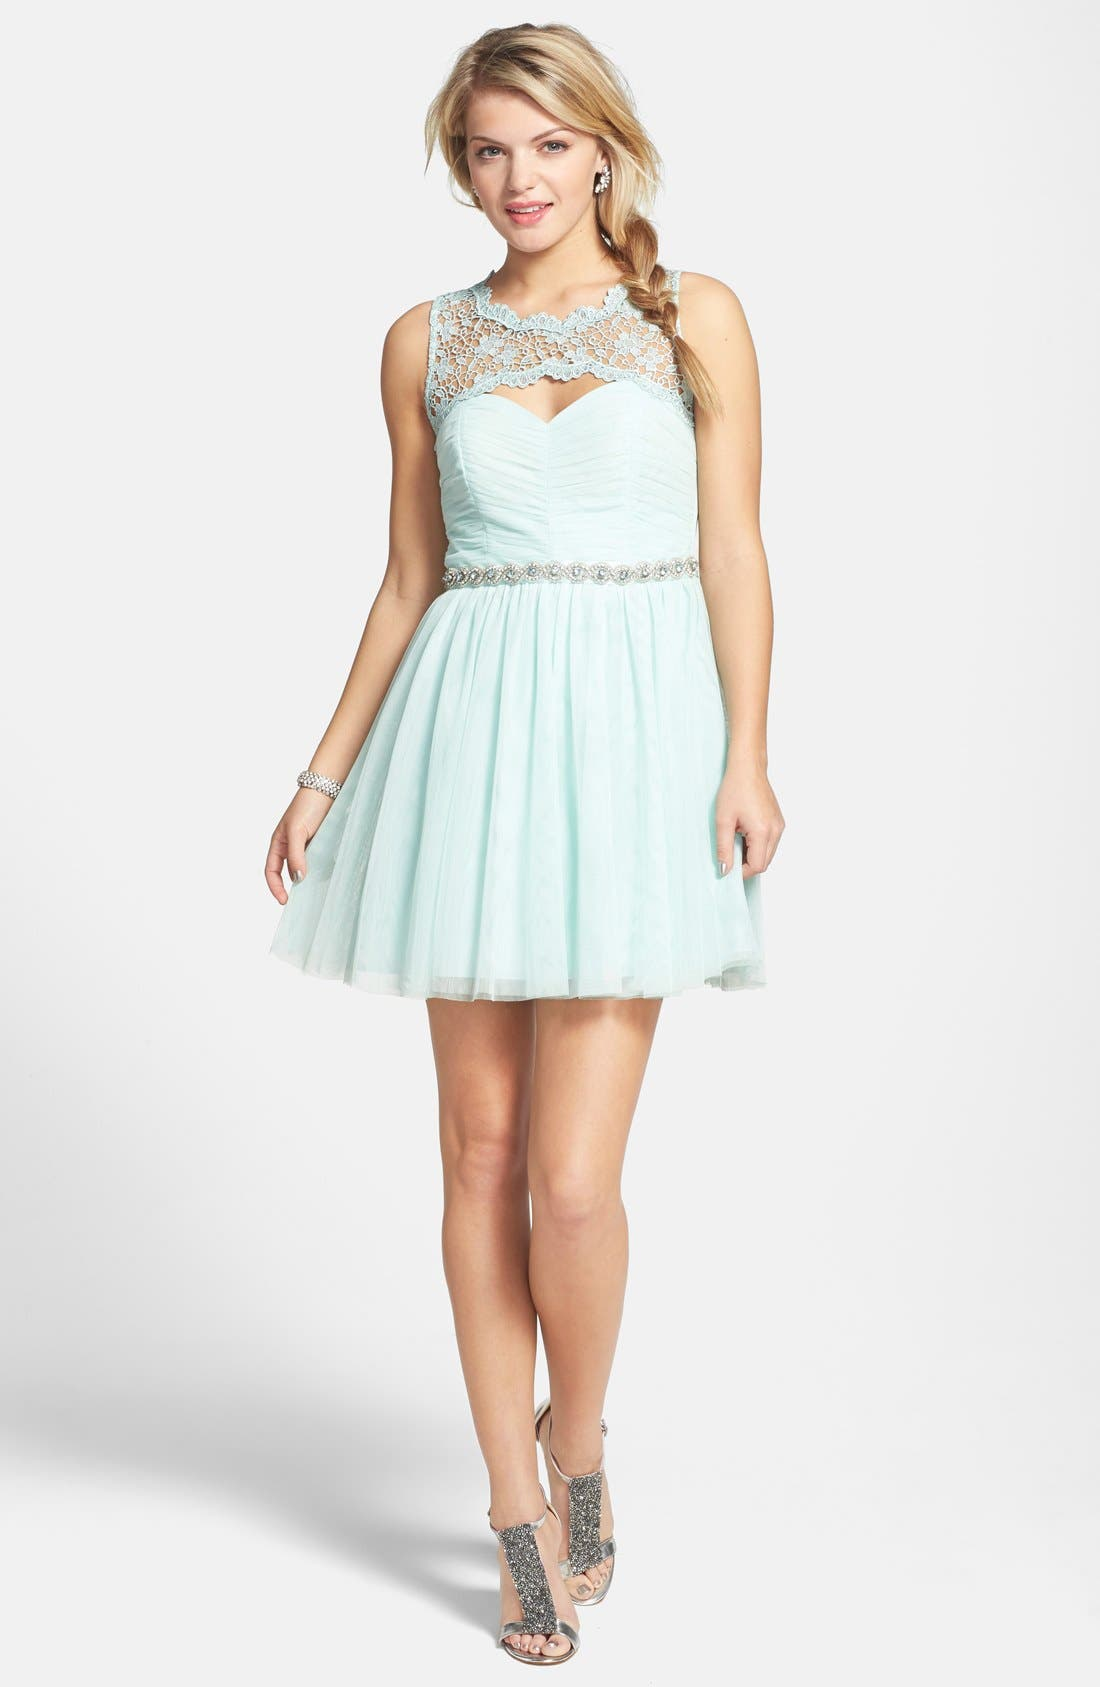 Main Image - Sequin Hearts Embellished Dress (Juniors)